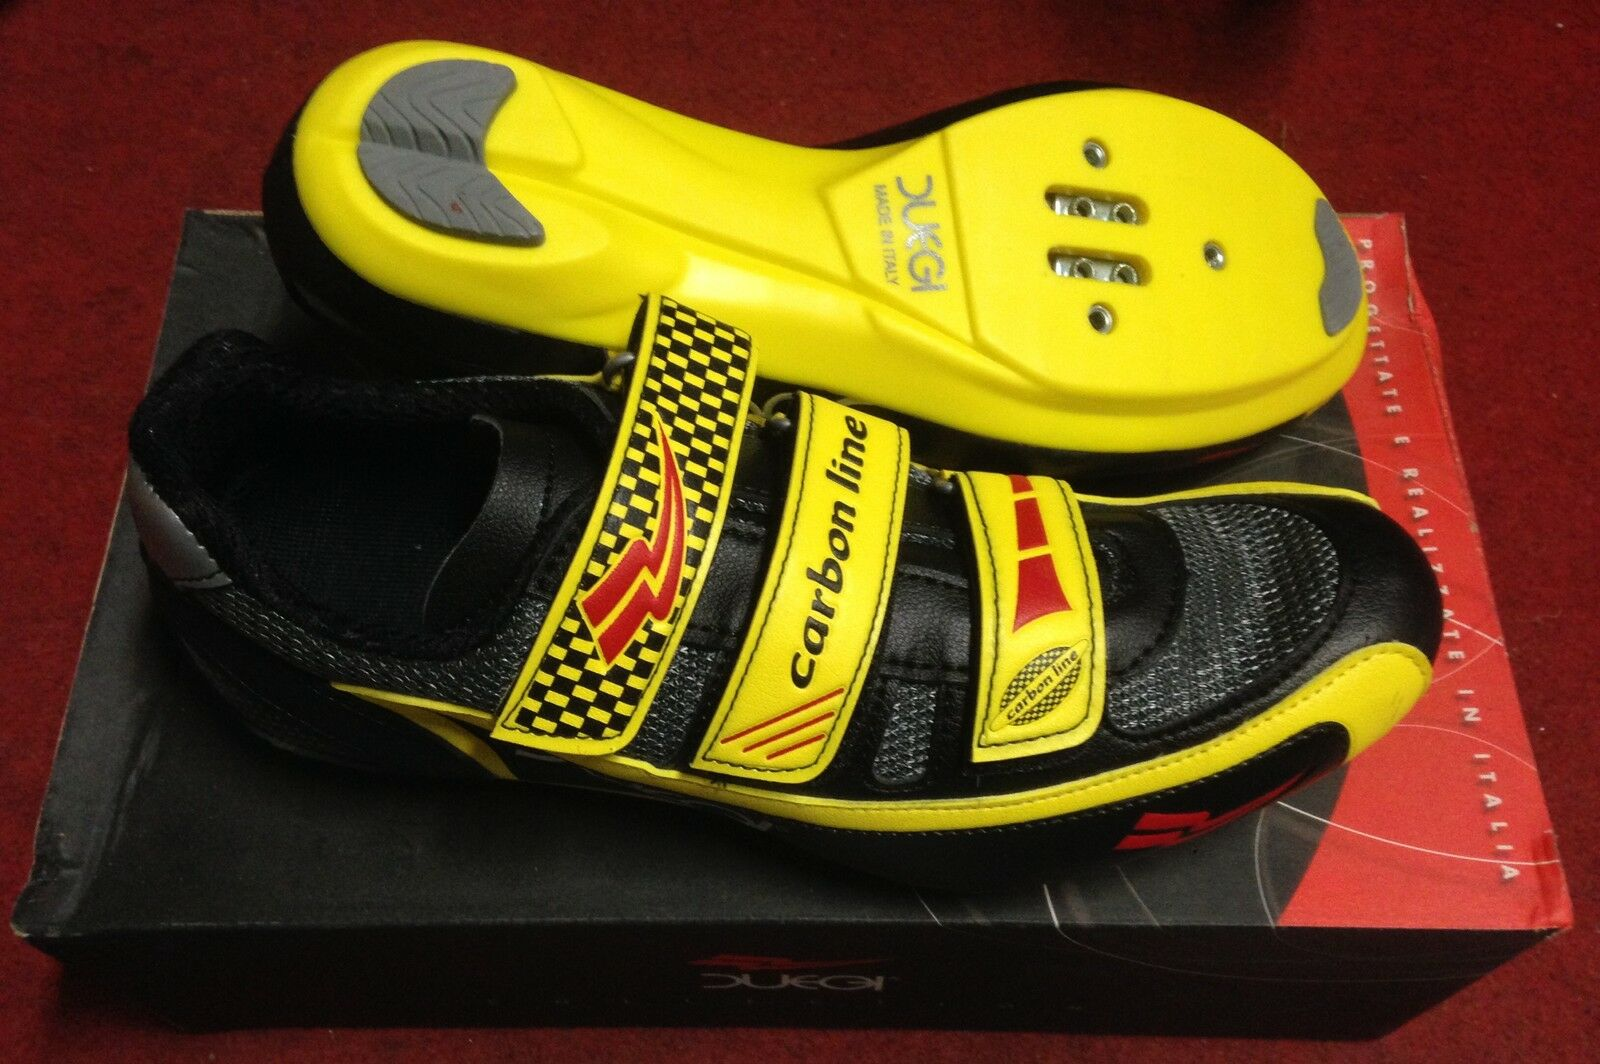 Scarpe bici corsa Duegi Carbon Line 3 road bike 39,41 scarpe 39,41 bike made in Italy e28bf3